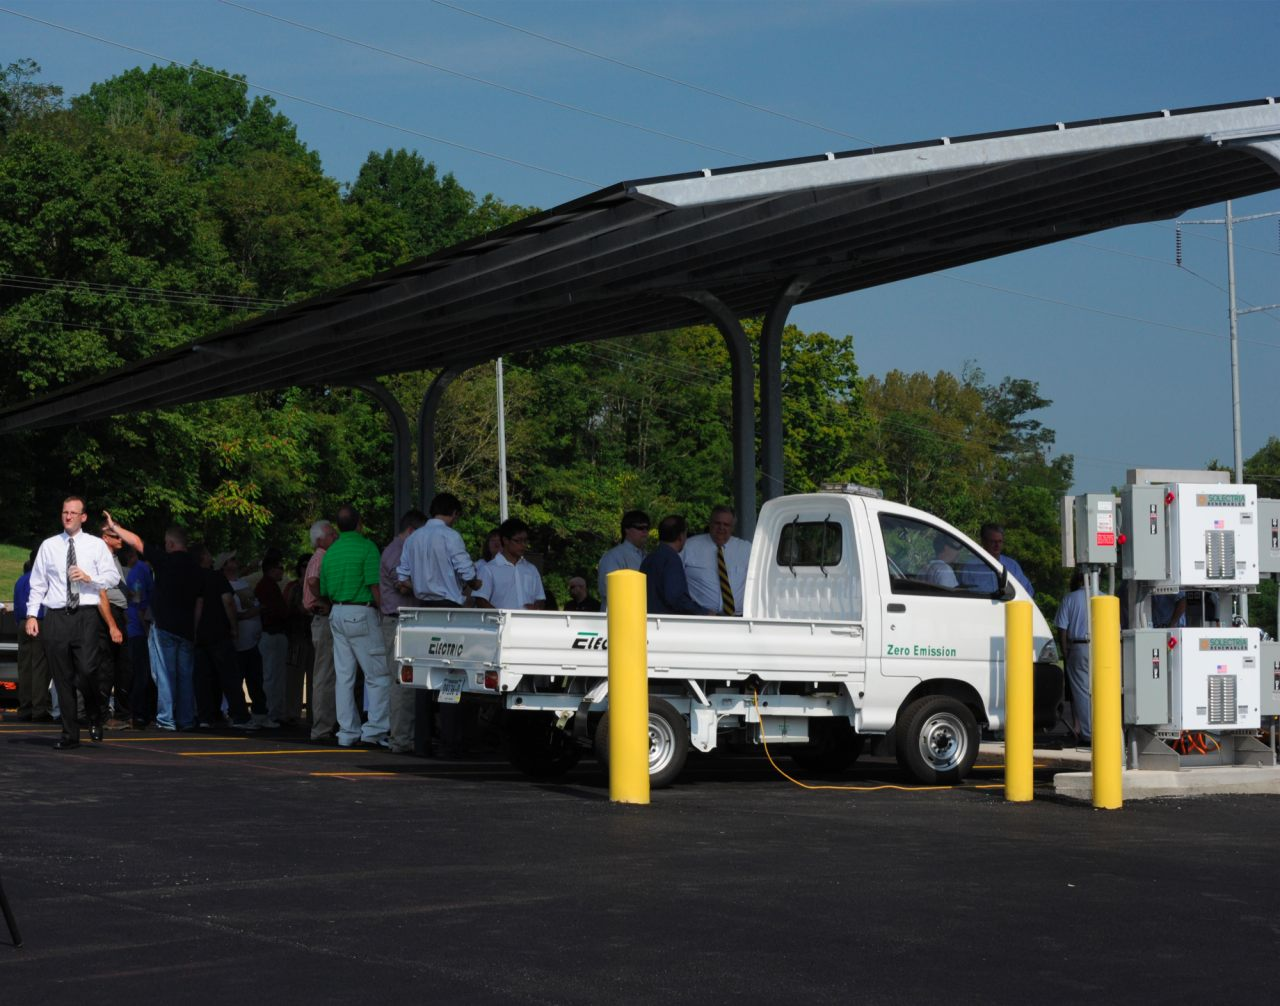 The Southeast's first solar parking structure was dedicated in Tennessee with the help of a ZAP electric truck.